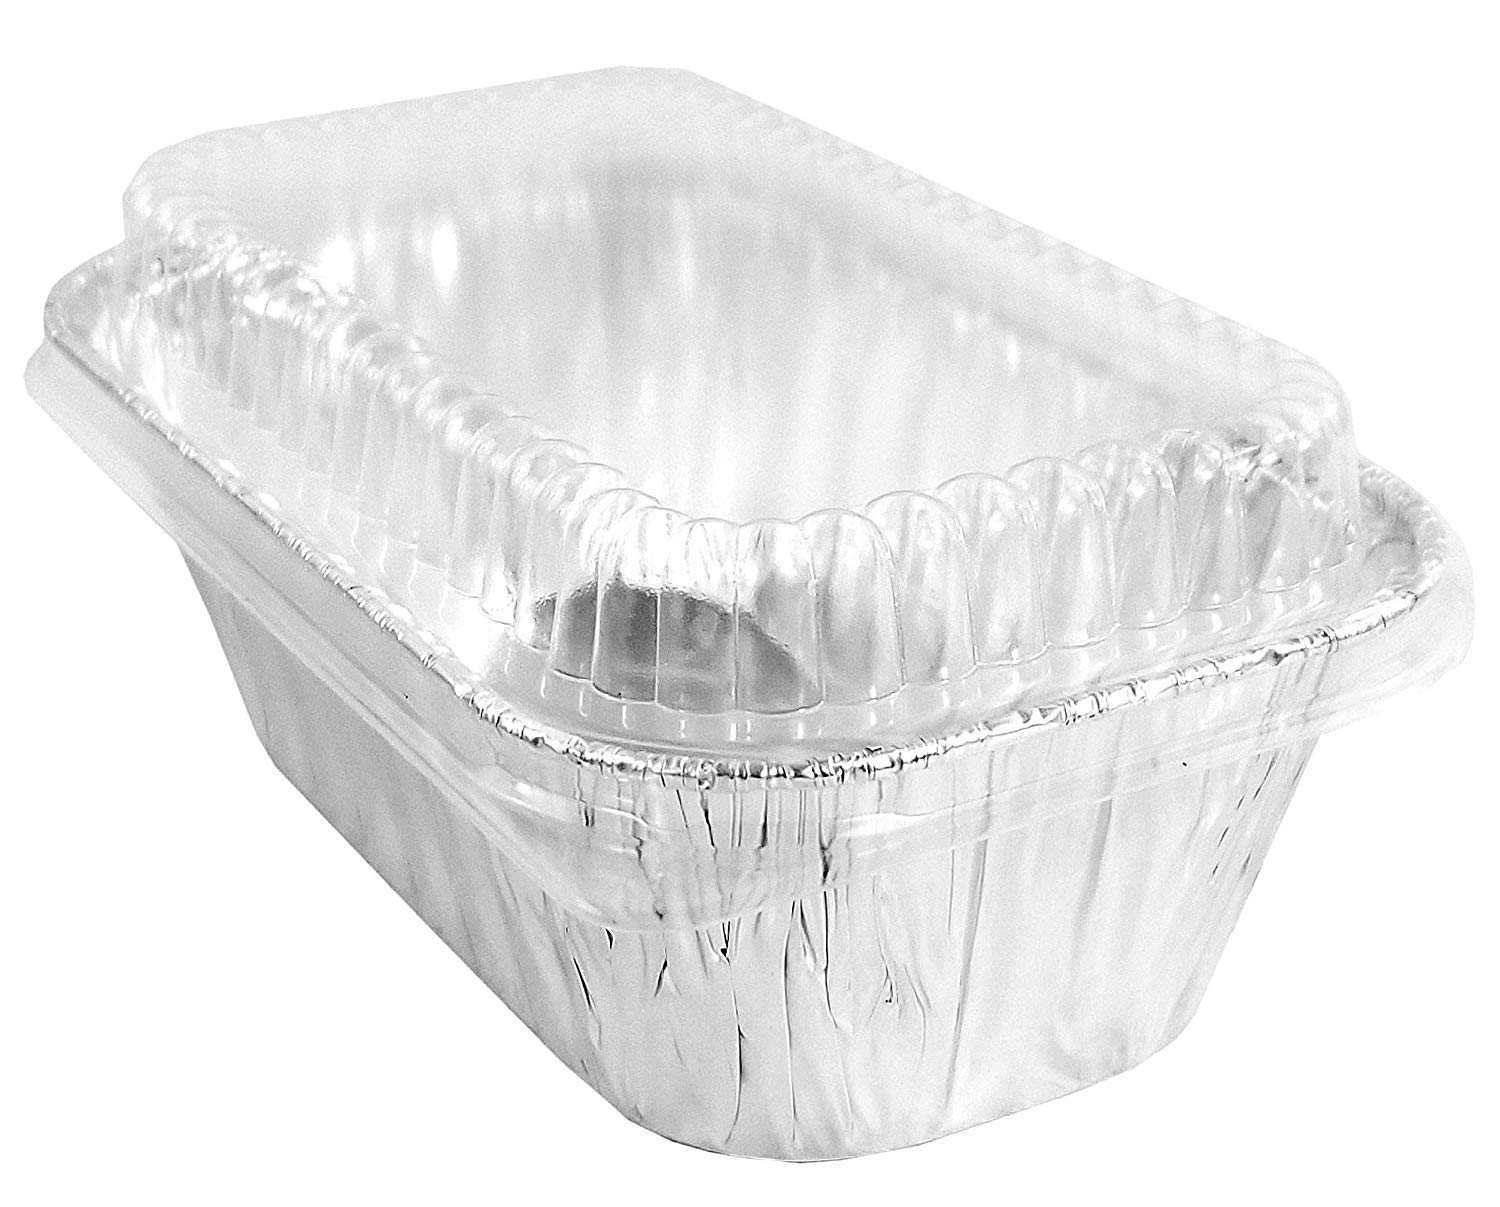 Handi-Foil 1 lb. Aluminum Foil Small Mini-Loaf Bread Pan w/Clear Dome Lid (Pack of 6 Sets)